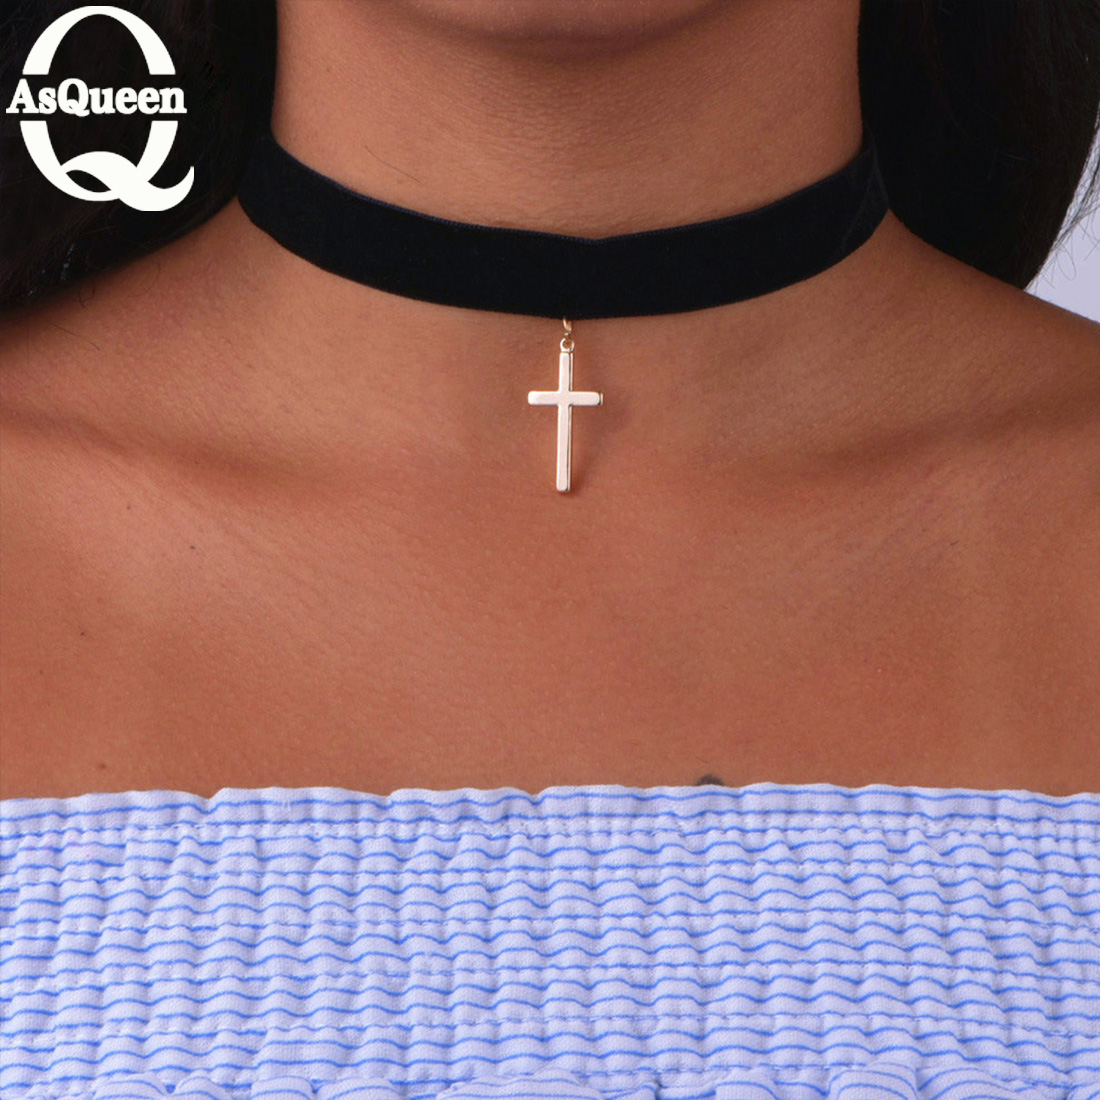 Black Flannel Cloth Choker With Cross Pendant Necklace